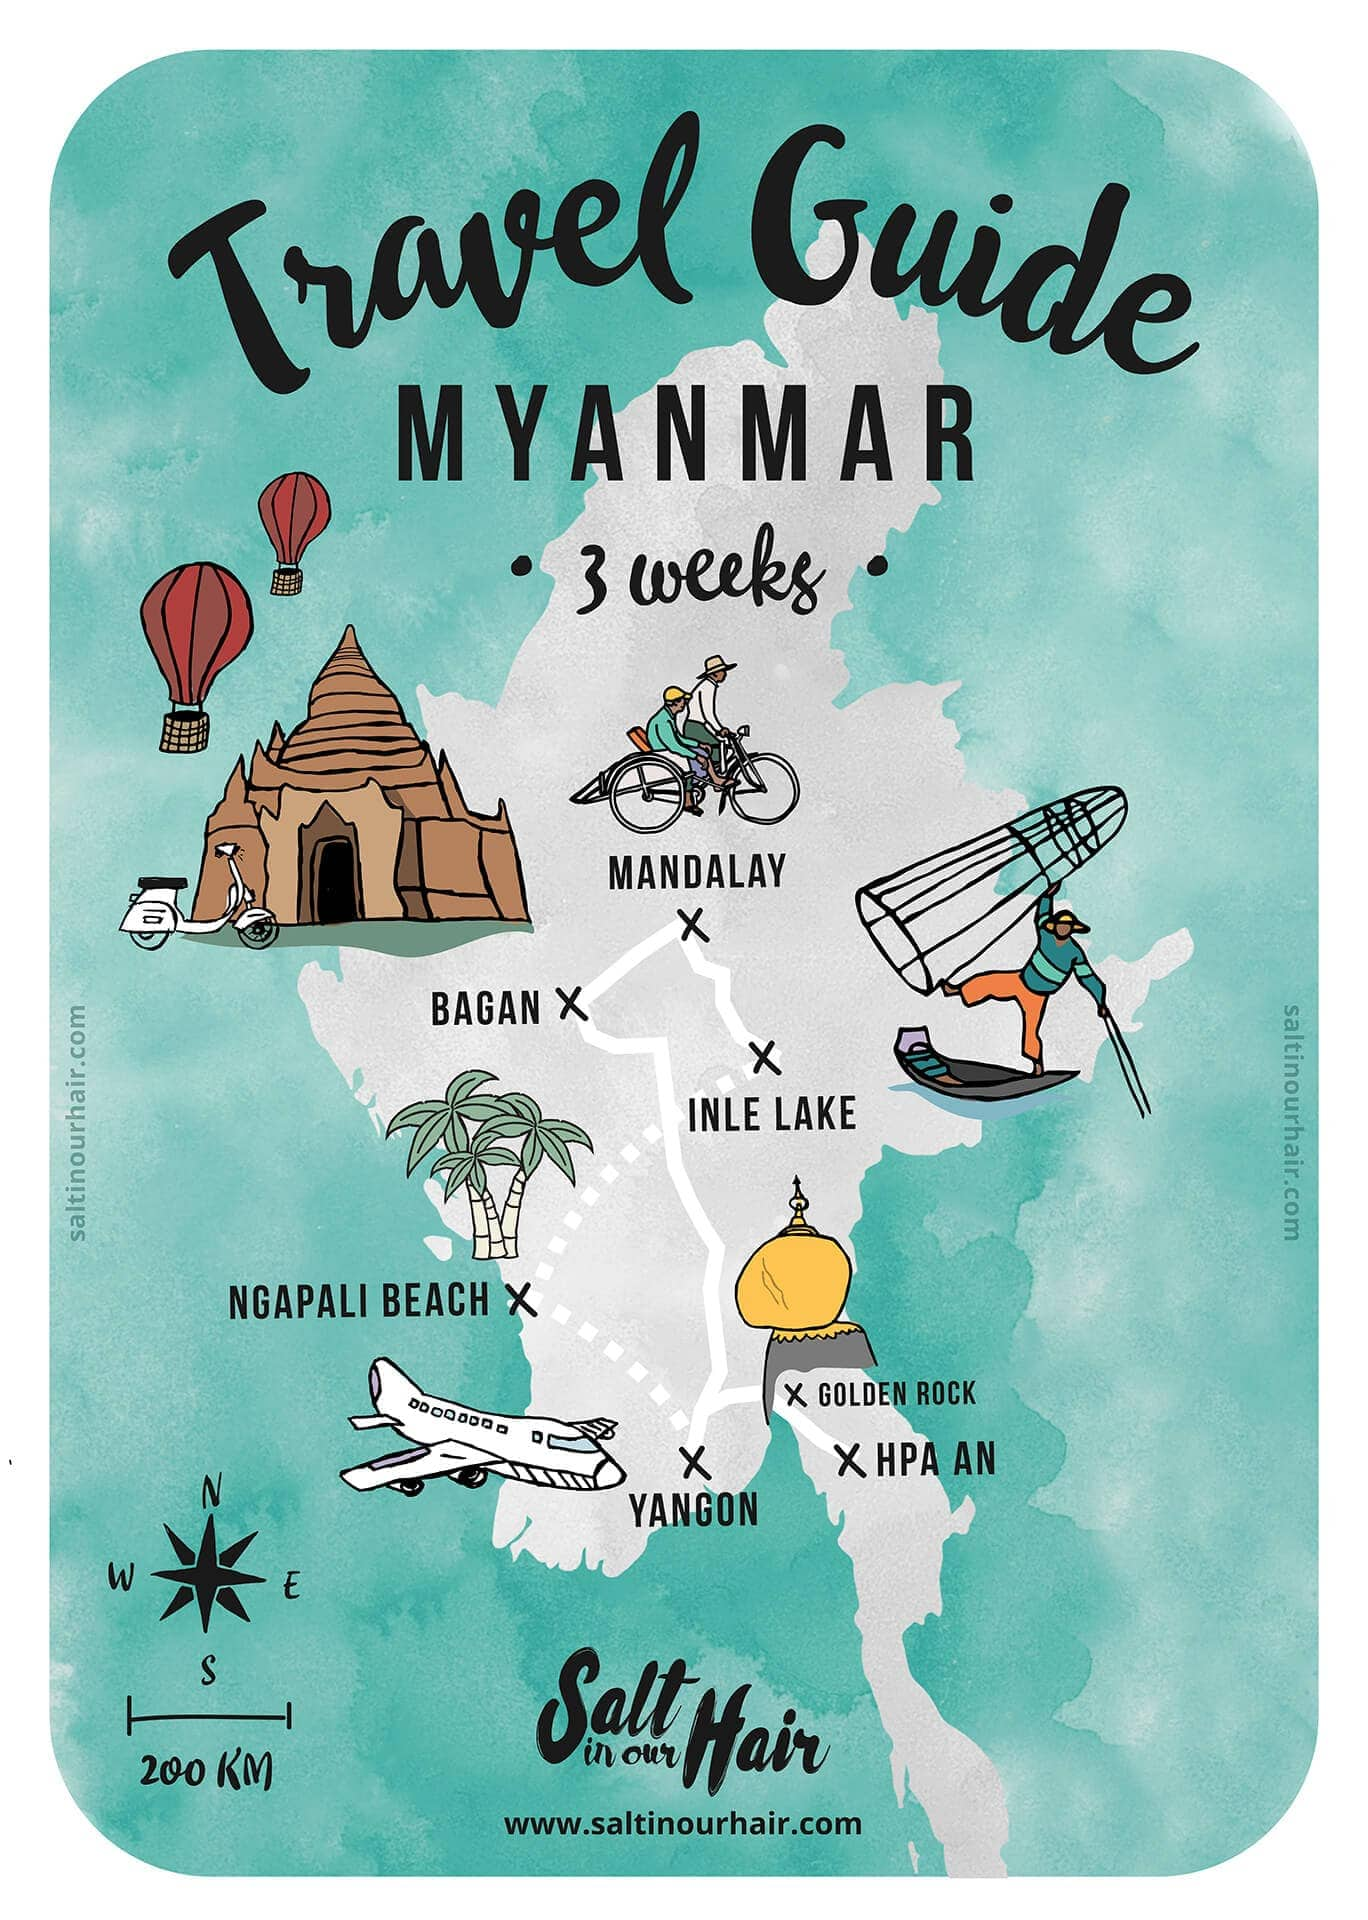 myanmar travel guide route map